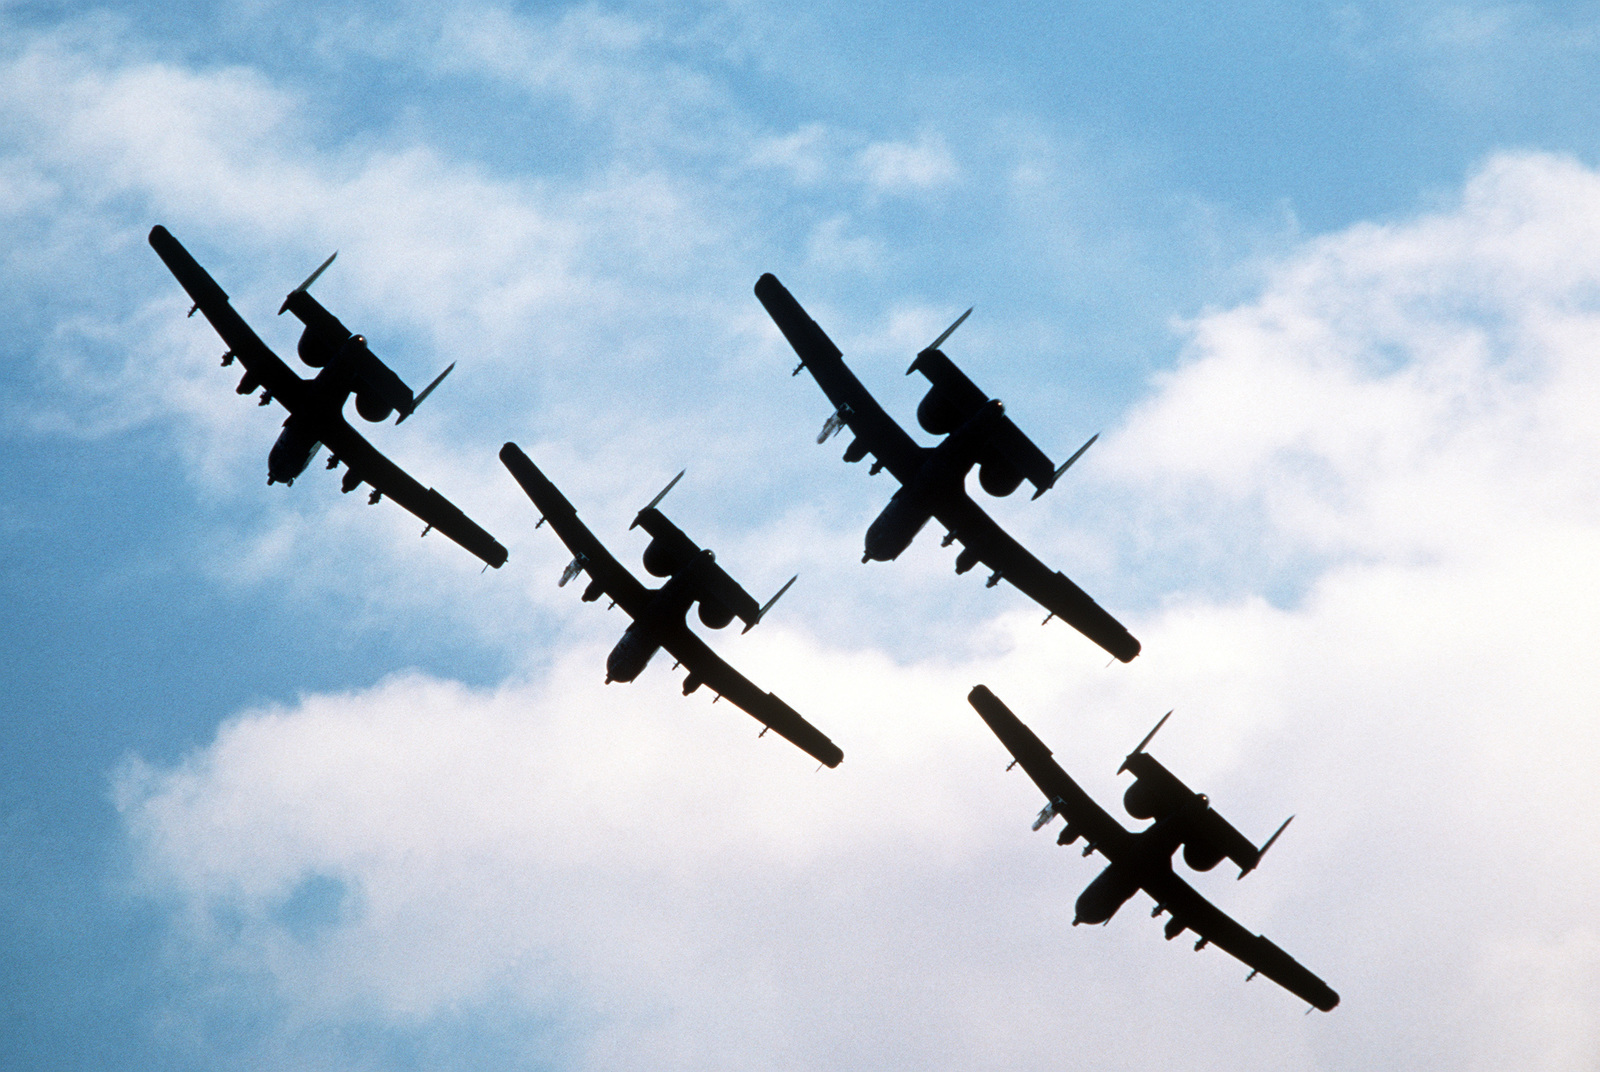 Four Air Force Reserve A-10 Thunderbolt II aircraft from the